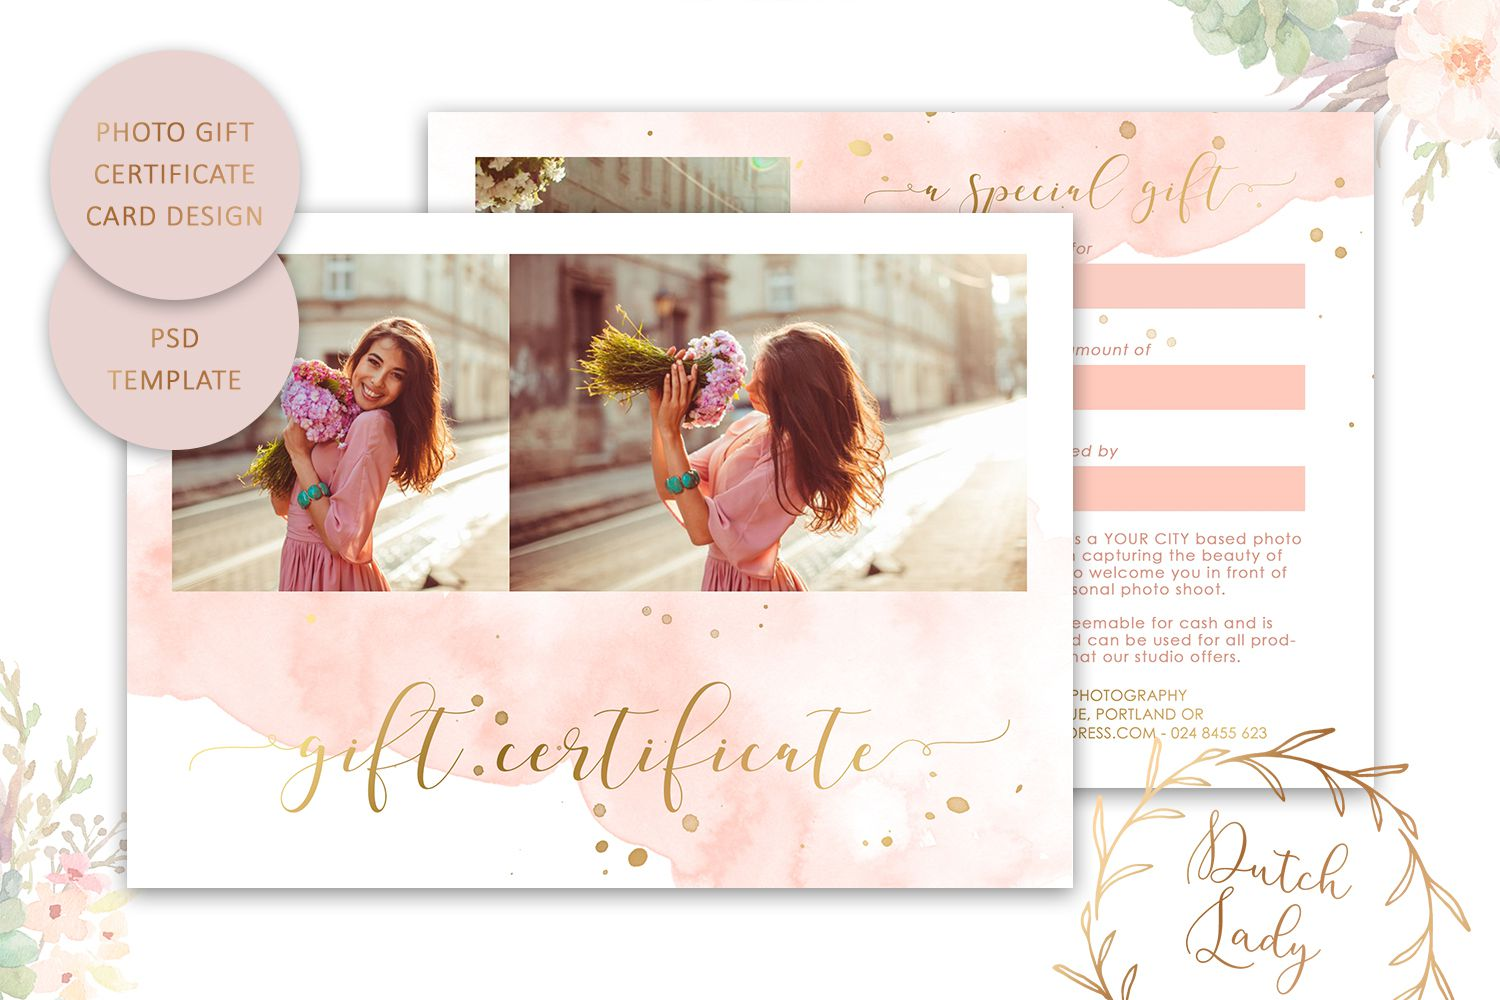 009 Outstanding Gift Card Template Psd High Resolution  Christma Photoshop Free HolderFull